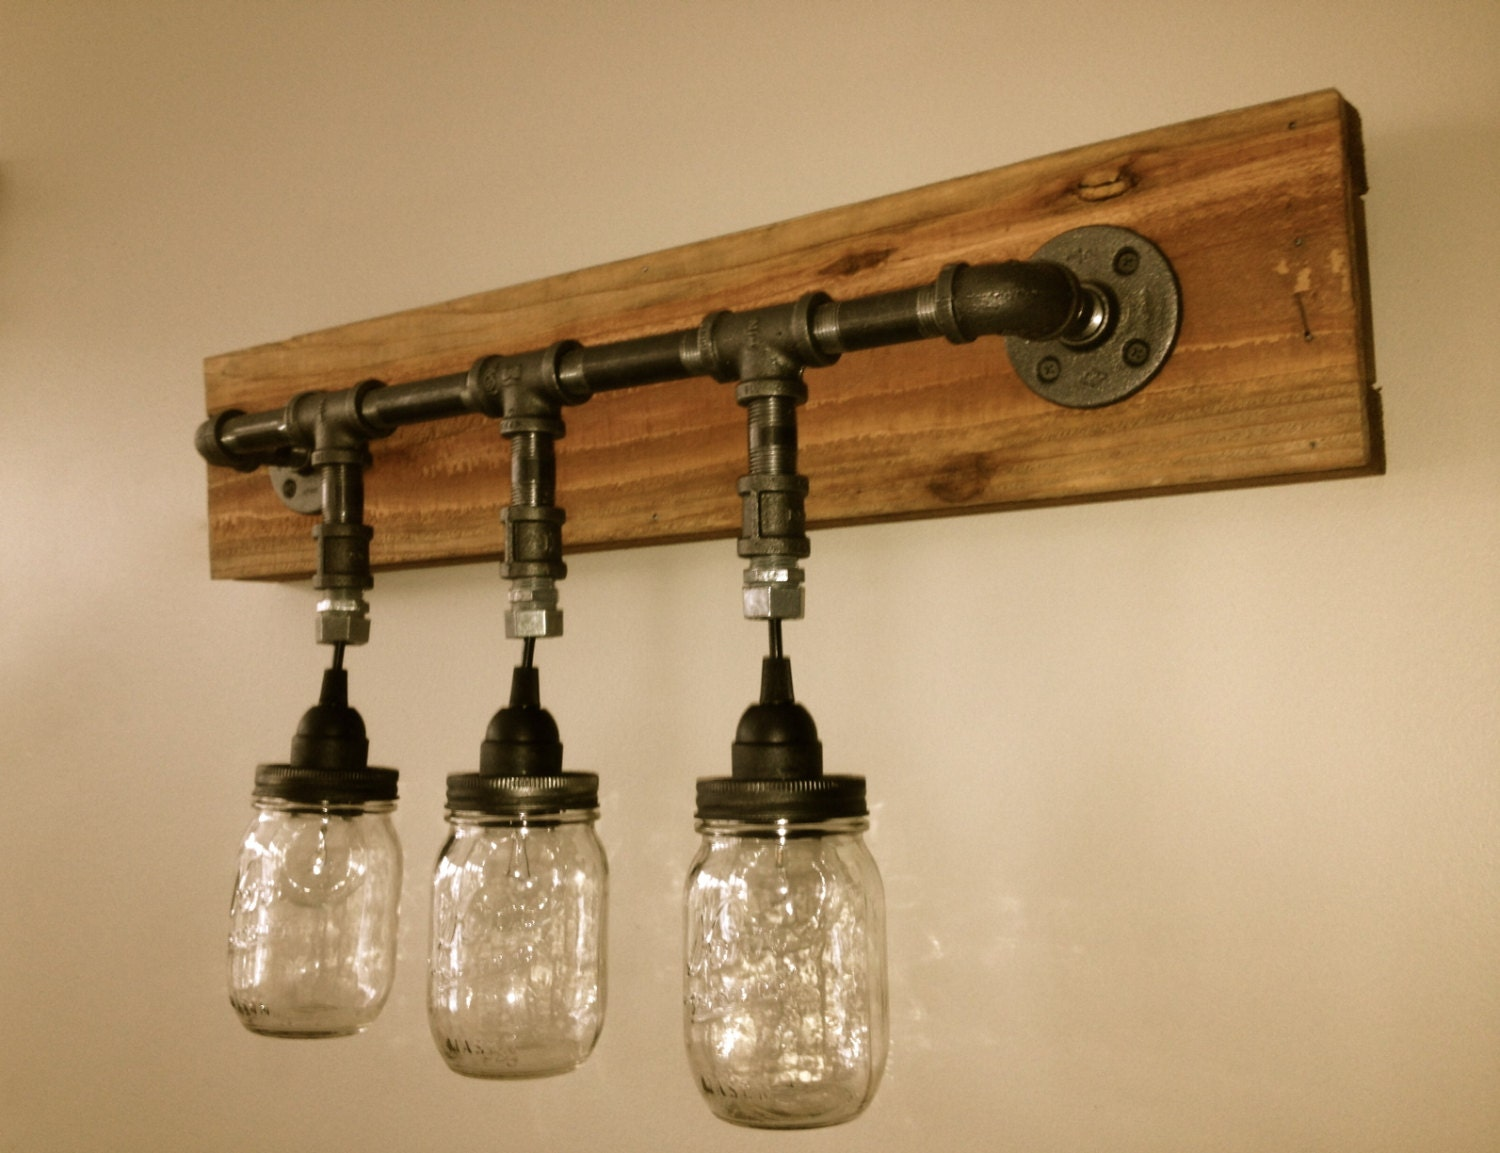 Rustic Industrial Modern Mason Jar Lights Vanity Light: Mason Jar Vanity Light Mason Jar Wall Light By ChicagoLights